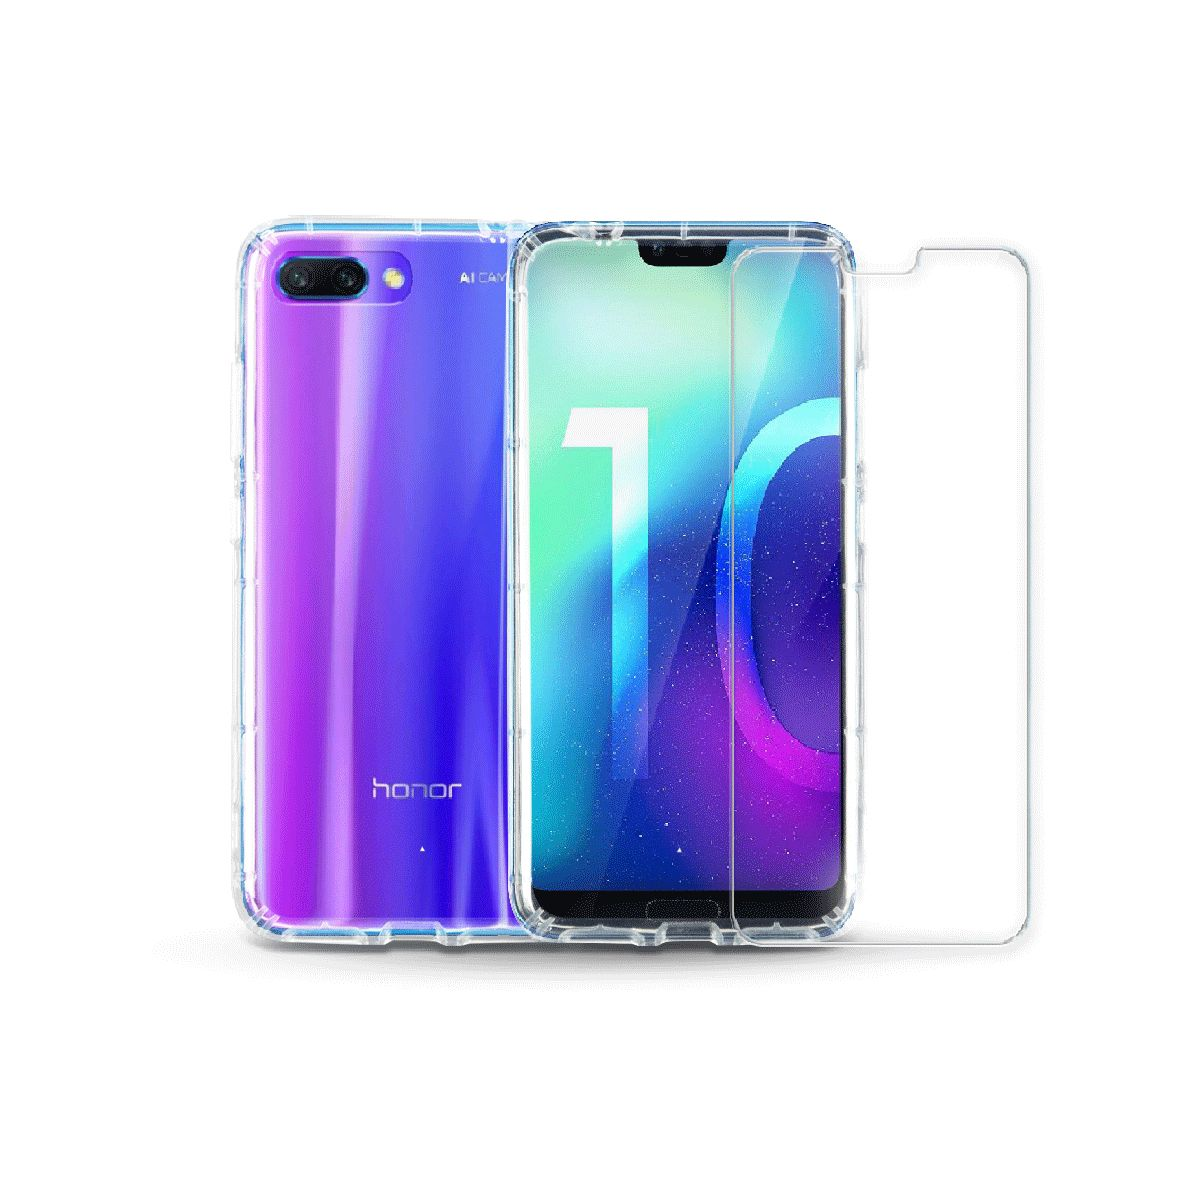 Coque + Protège écran IBROZ Honor 10 PHANTOM Pack Coque + verre trem (photo)